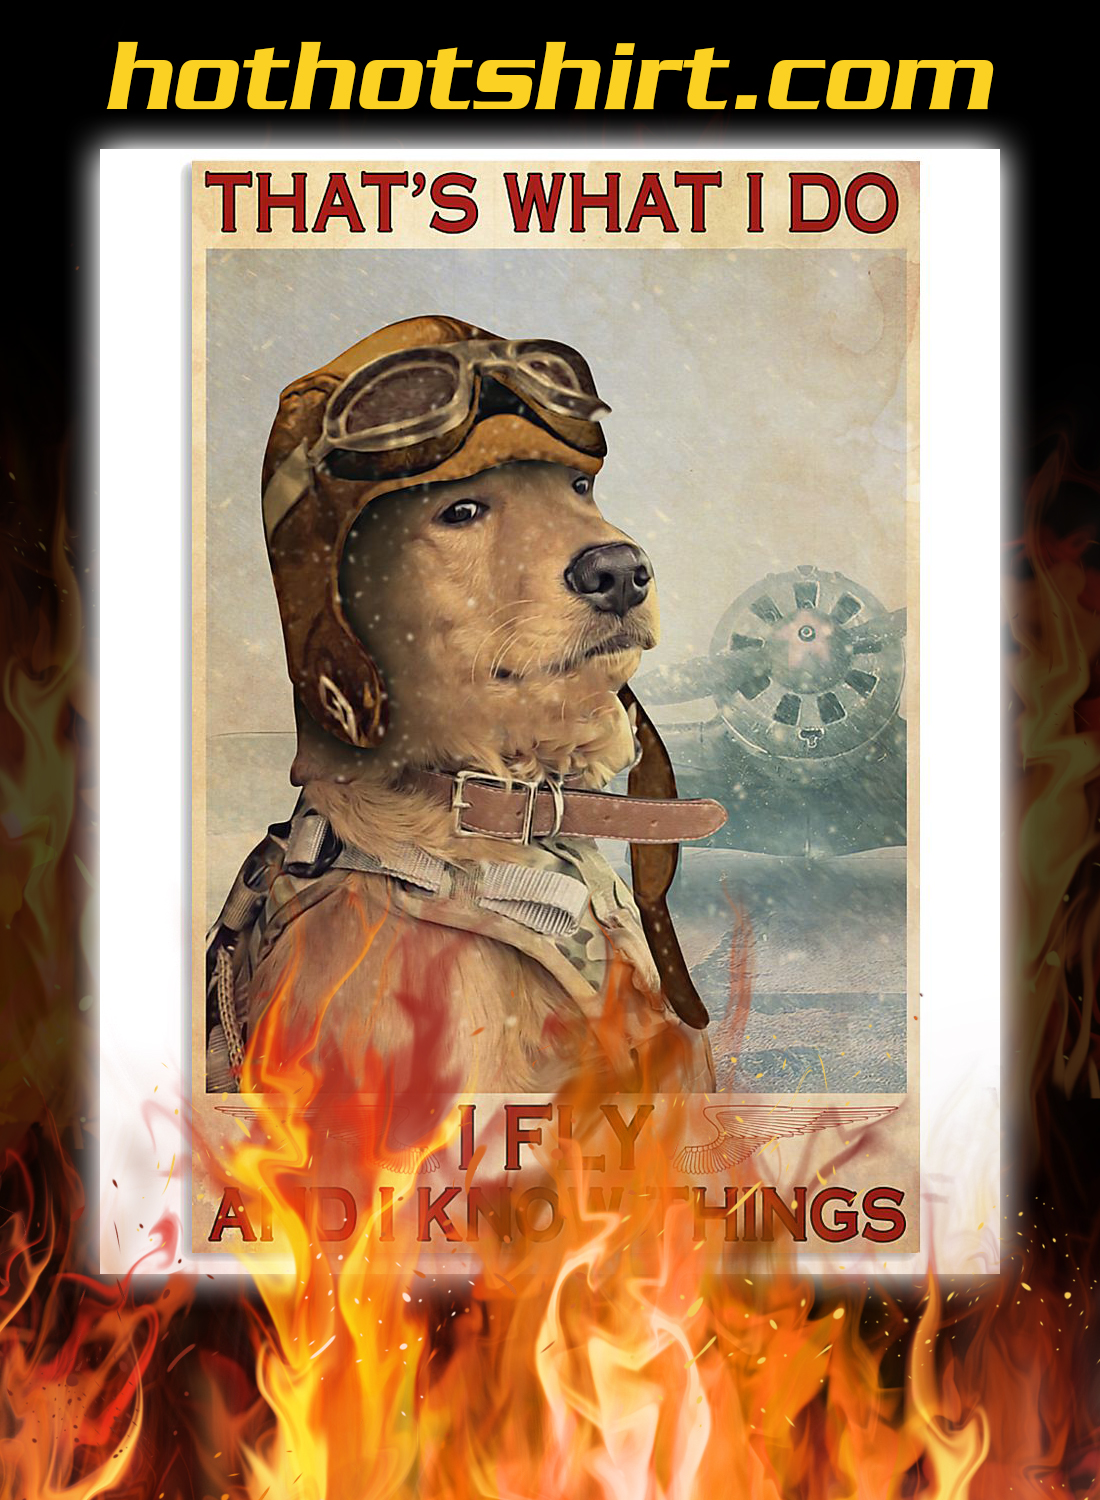 Golden retriever that's what i do i fly and i know things poster 2